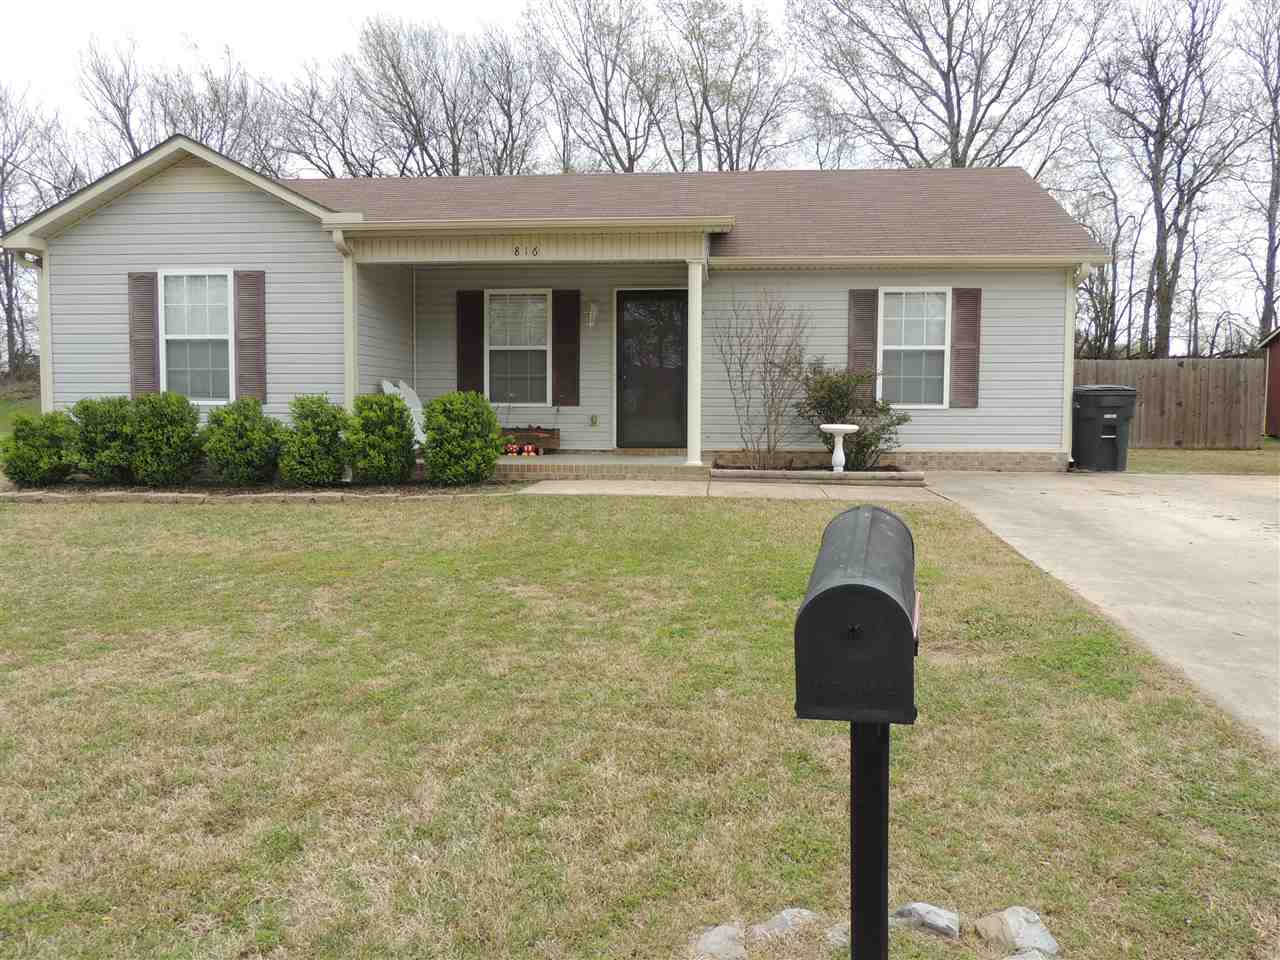 816 Slate Dr,Newbern,Tennessee 38059,3 Bedrooms Bedrooms,2 BathroomsBathrooms,Residential,816 Slate Dr,182198